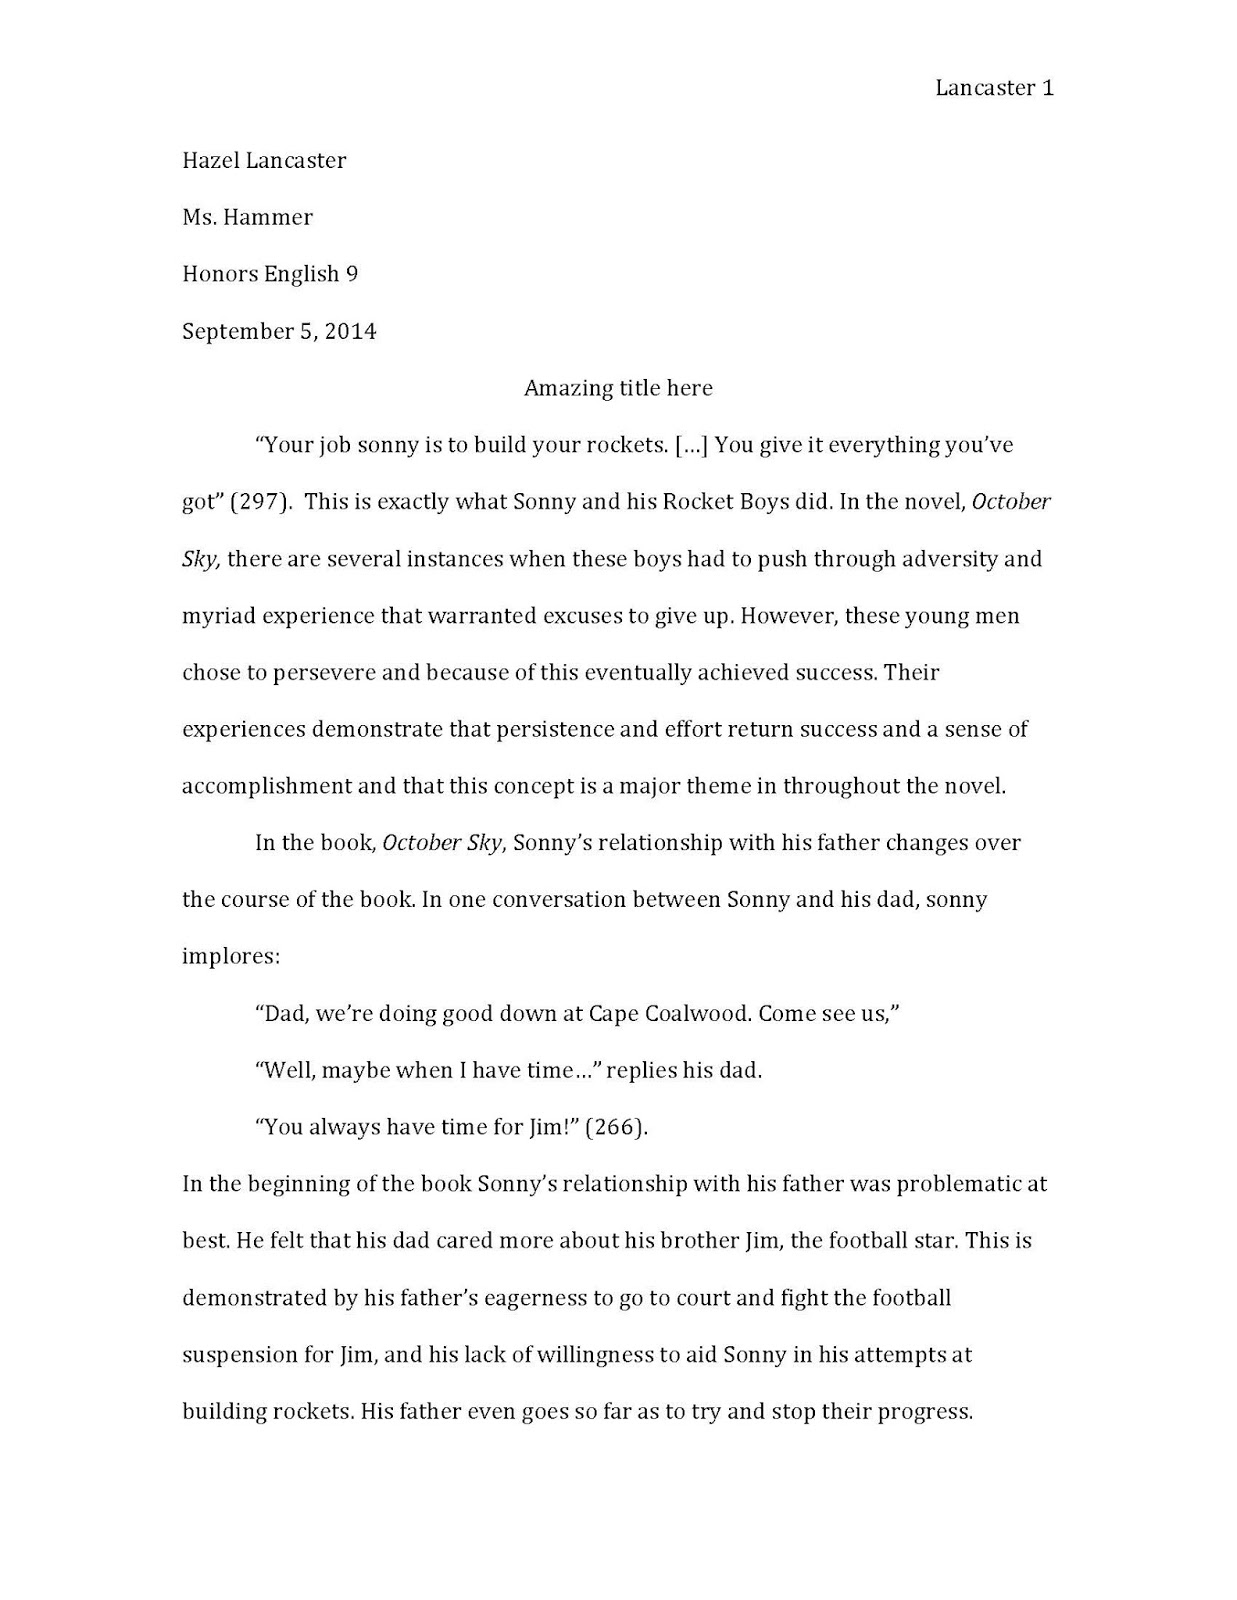 sky essay paul sutinen essay archives john kay theme essay  hammer time honors period 1 class essay